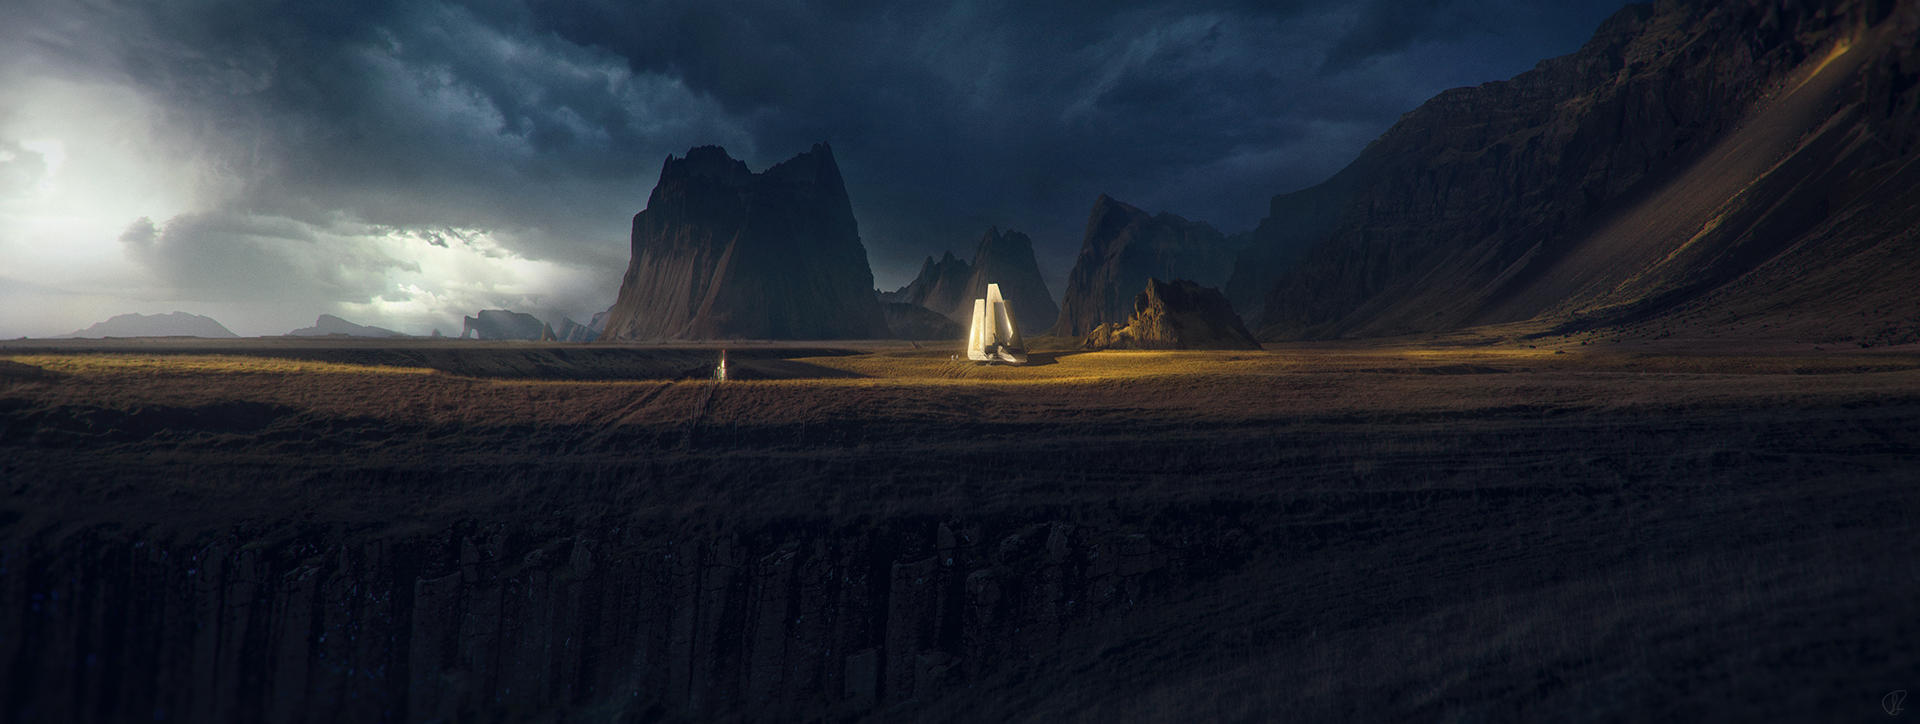 Evening patrol by Jessica-Rossier